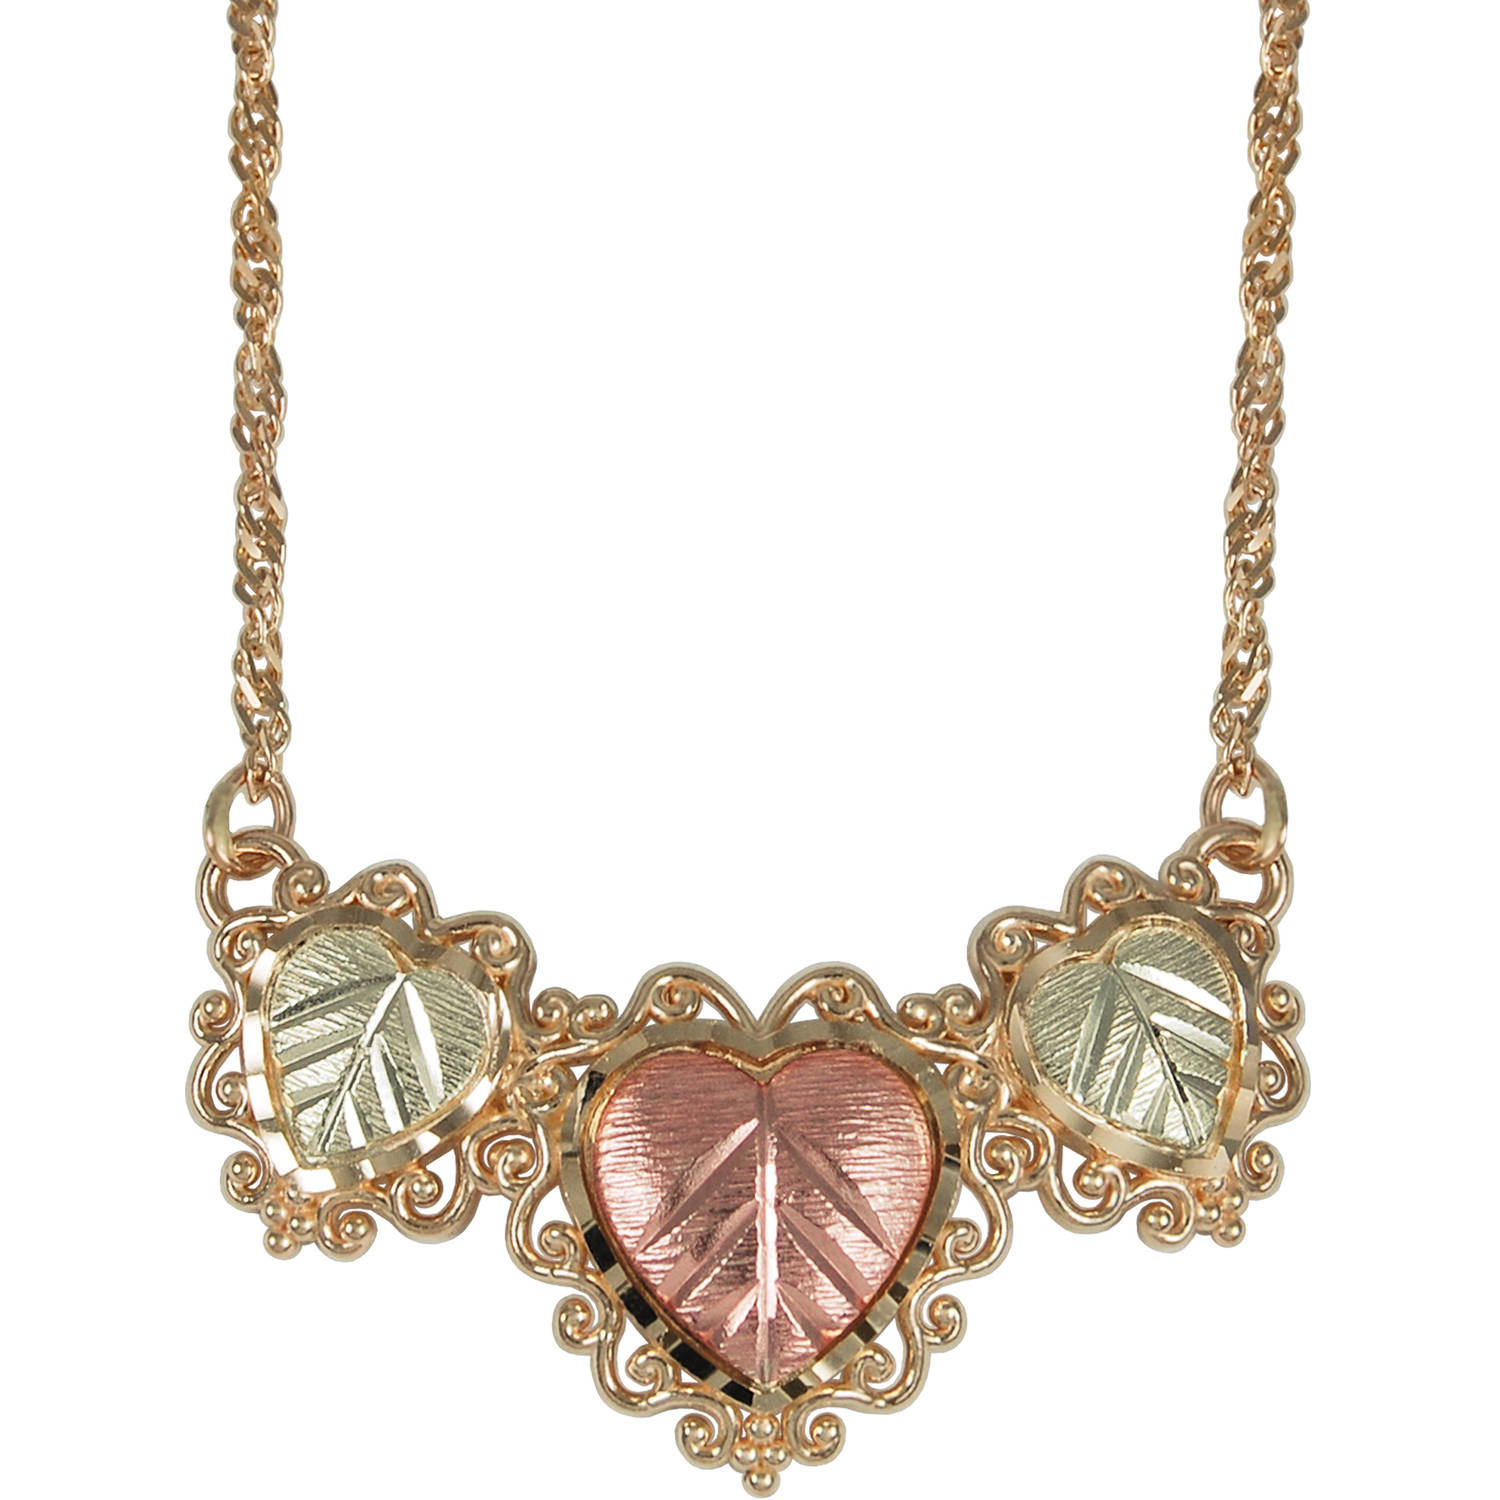 Black Hills Gold 10kt Yellow Gold with 12kt Gold Leaf Accents Triple Heart Necklace, 17.75""